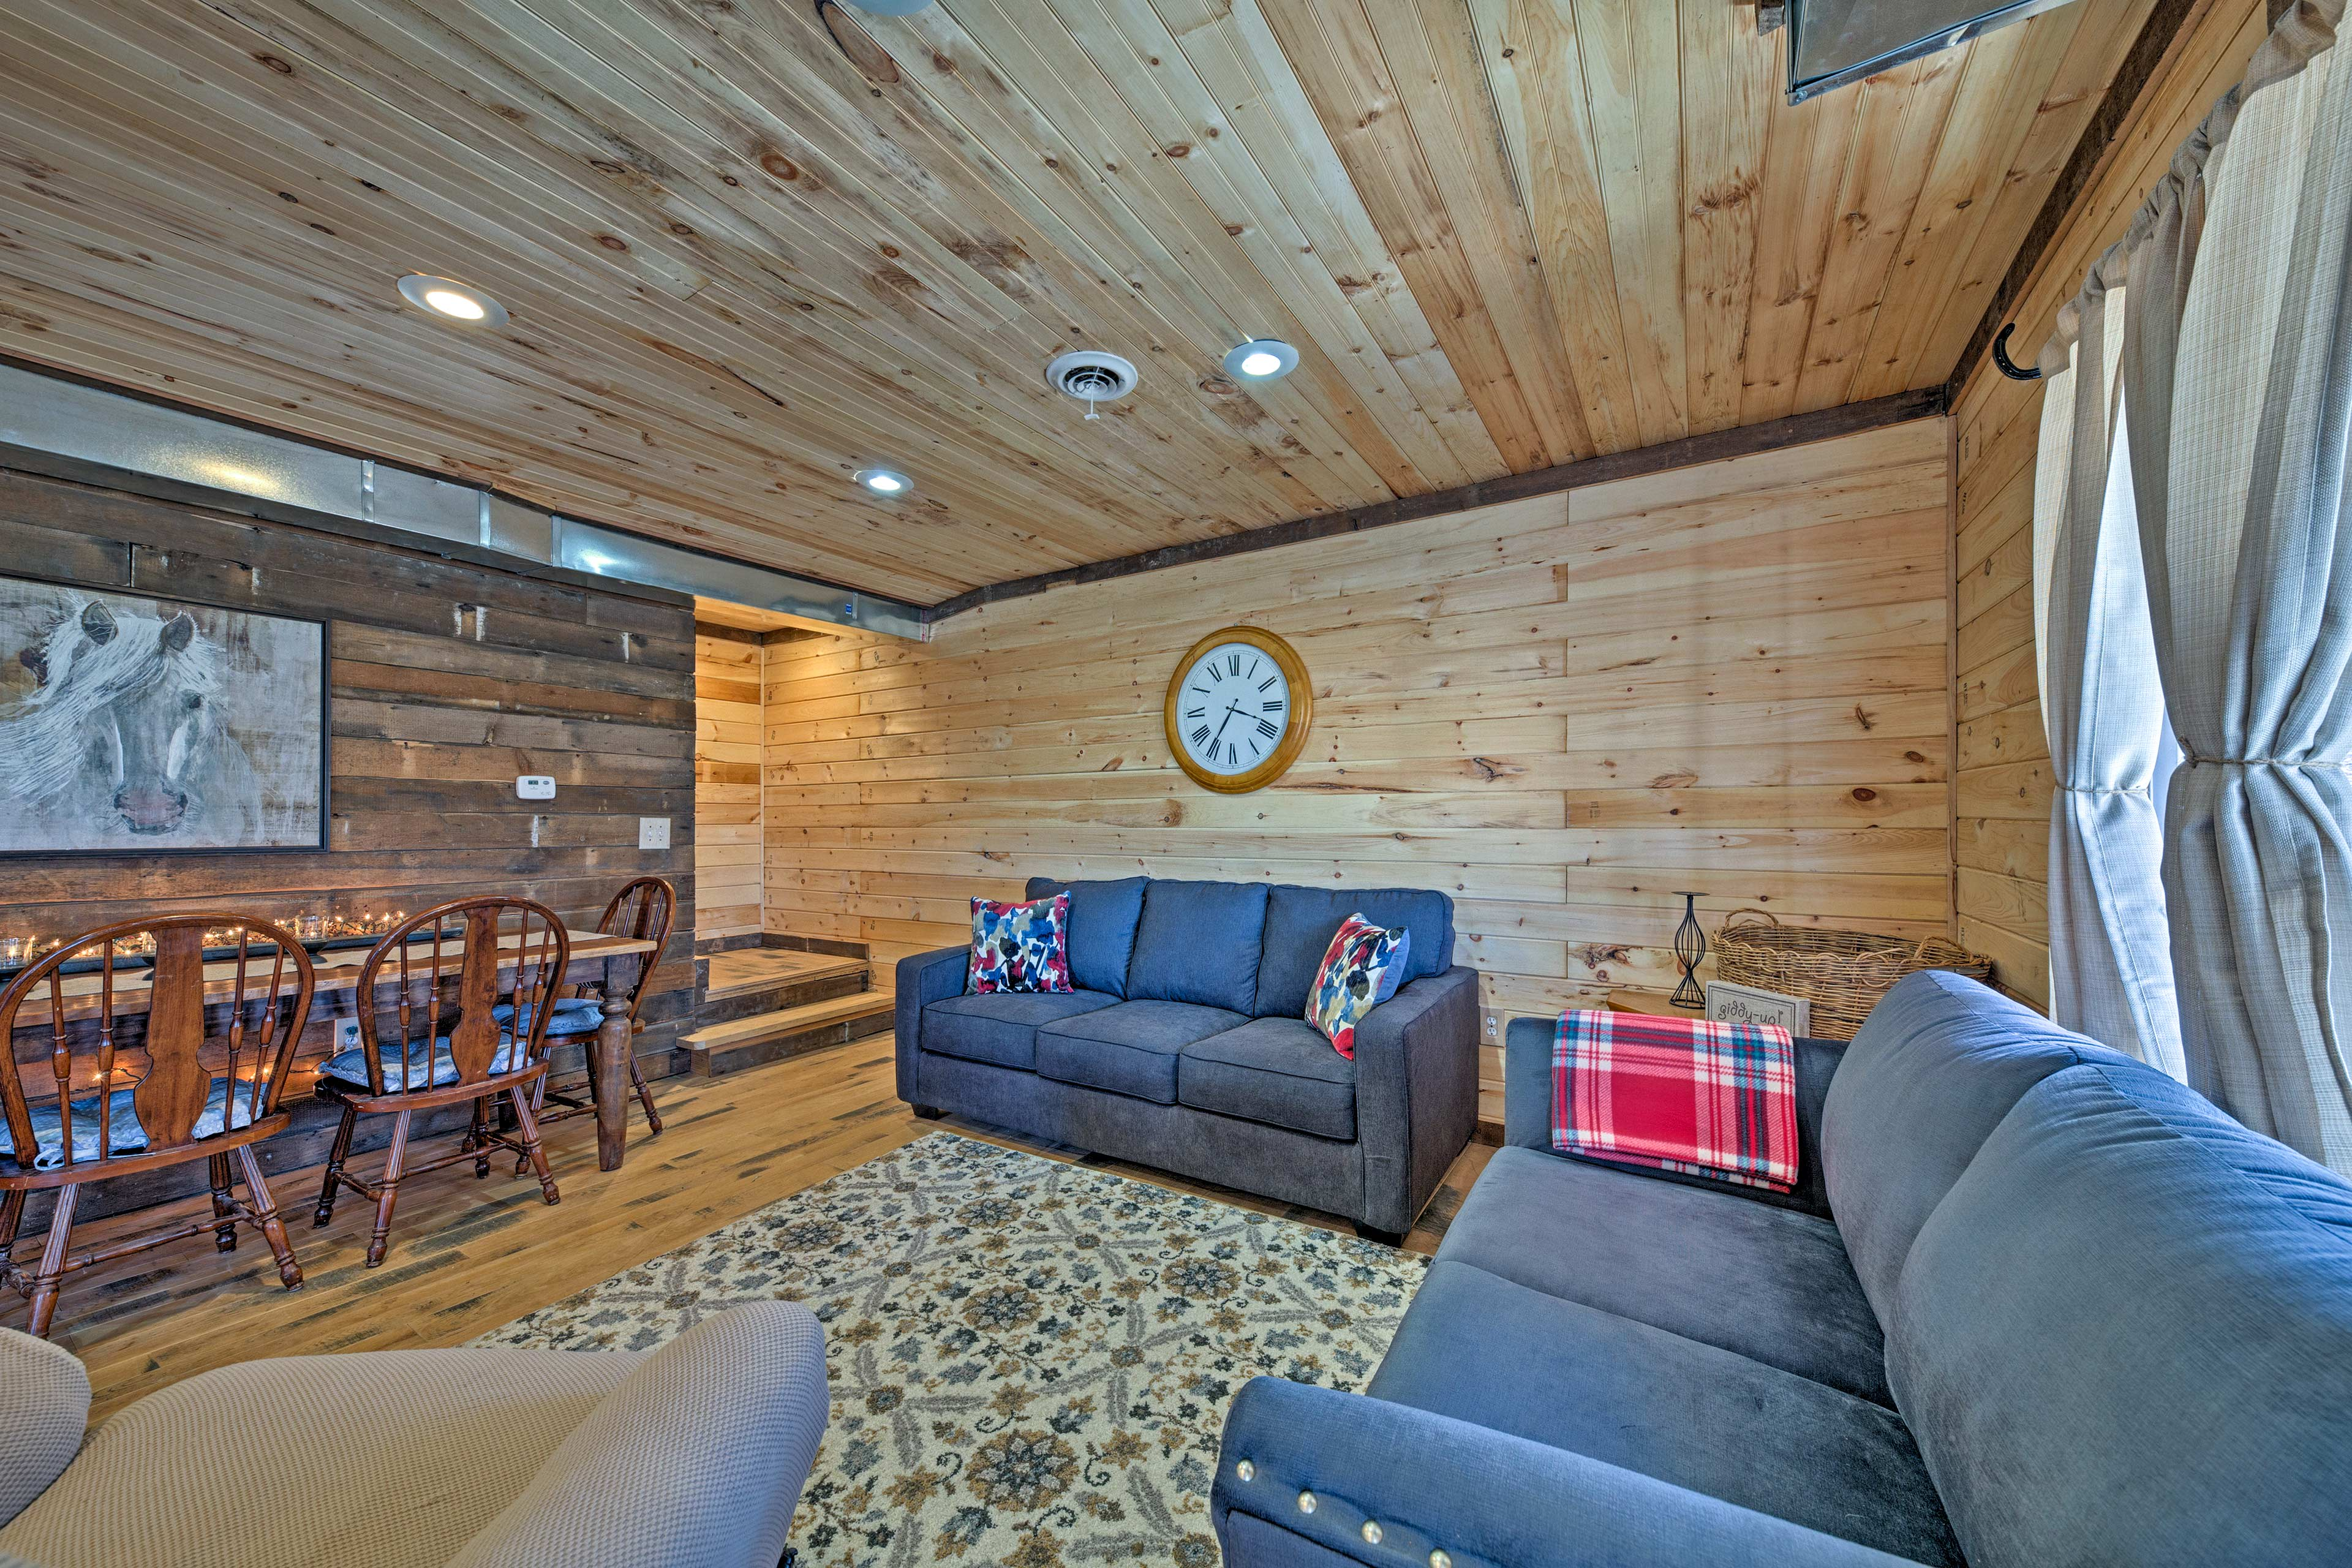 The well-appointed interior boasts all the comforts of home!